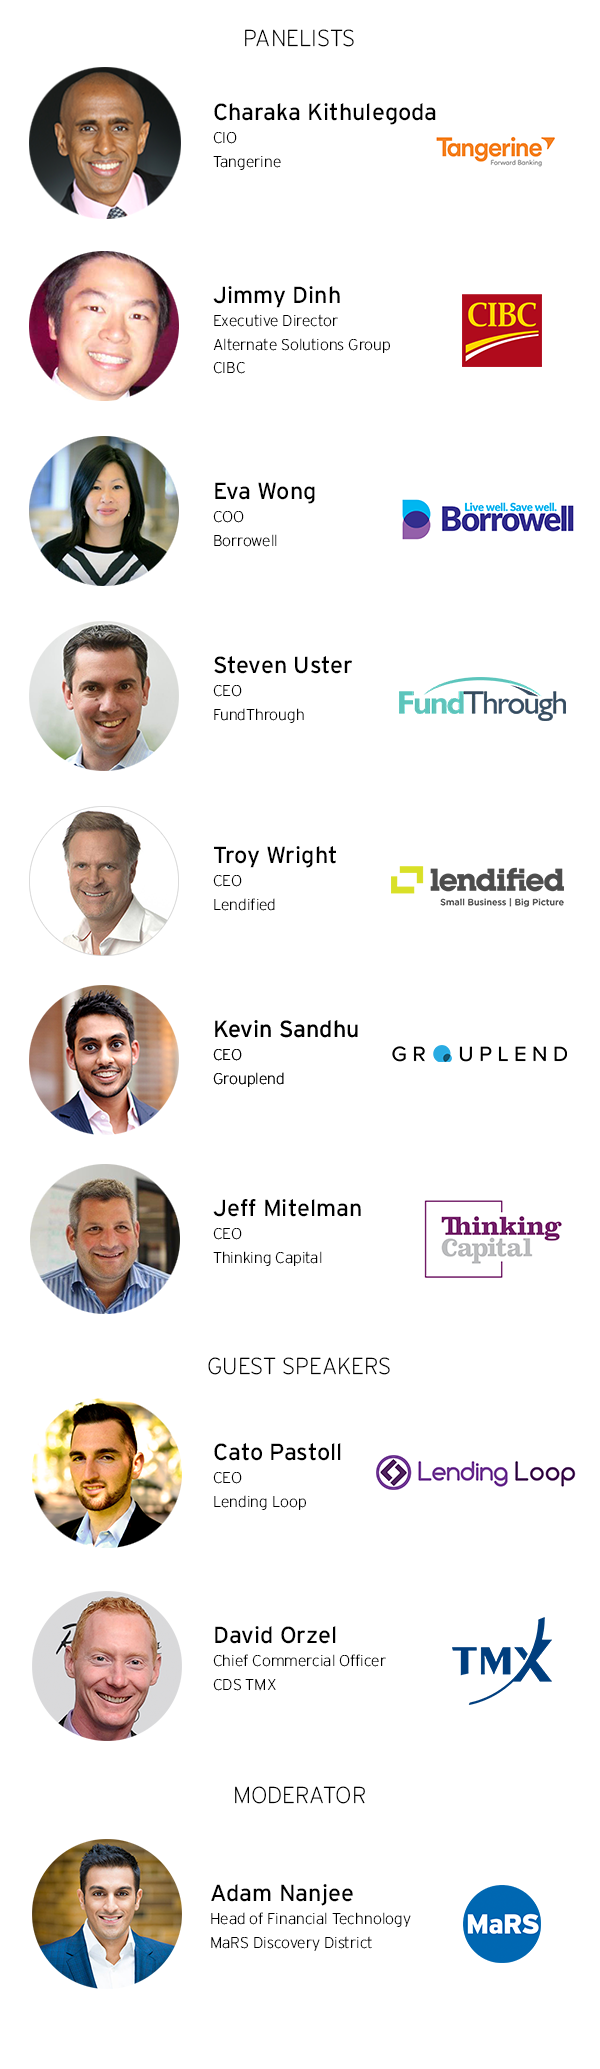 Panelists: Charaka Kithulegoda, CIO, Tangerine; Jimmy Dinh, Executive Director - Alternate Solutions Group, CIBC; Eva Wong, COO, Borrowell; Steven Uster, CEO, FundThrough; Troy Wright, CEO, Lendified; Kevin Sandhu, CEO, Grouplend; Jeff Mitelman, CEO, Thinking Capital. Guest Speakers: Cato Pastoll, CEO, Lending Loop and David Orzel, Chief Commercial Officer, CDS TMX. Moderator: Adam Nanjee, Head of Financial Technology, MaRS Discovery District.